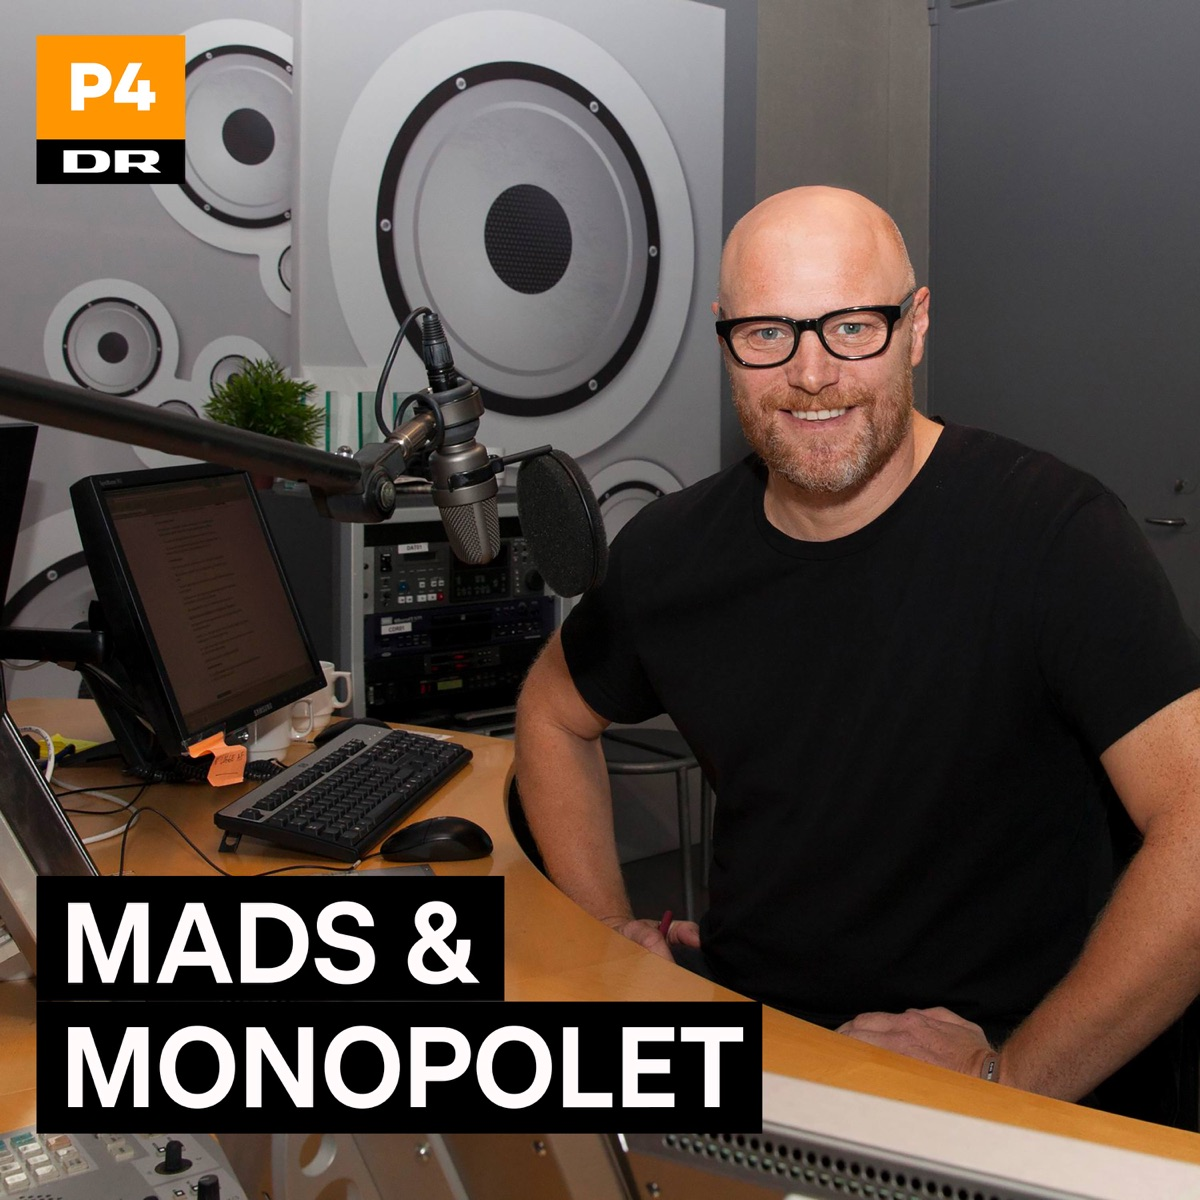 Mads & Monopolet - podcast - 13. jun 2020